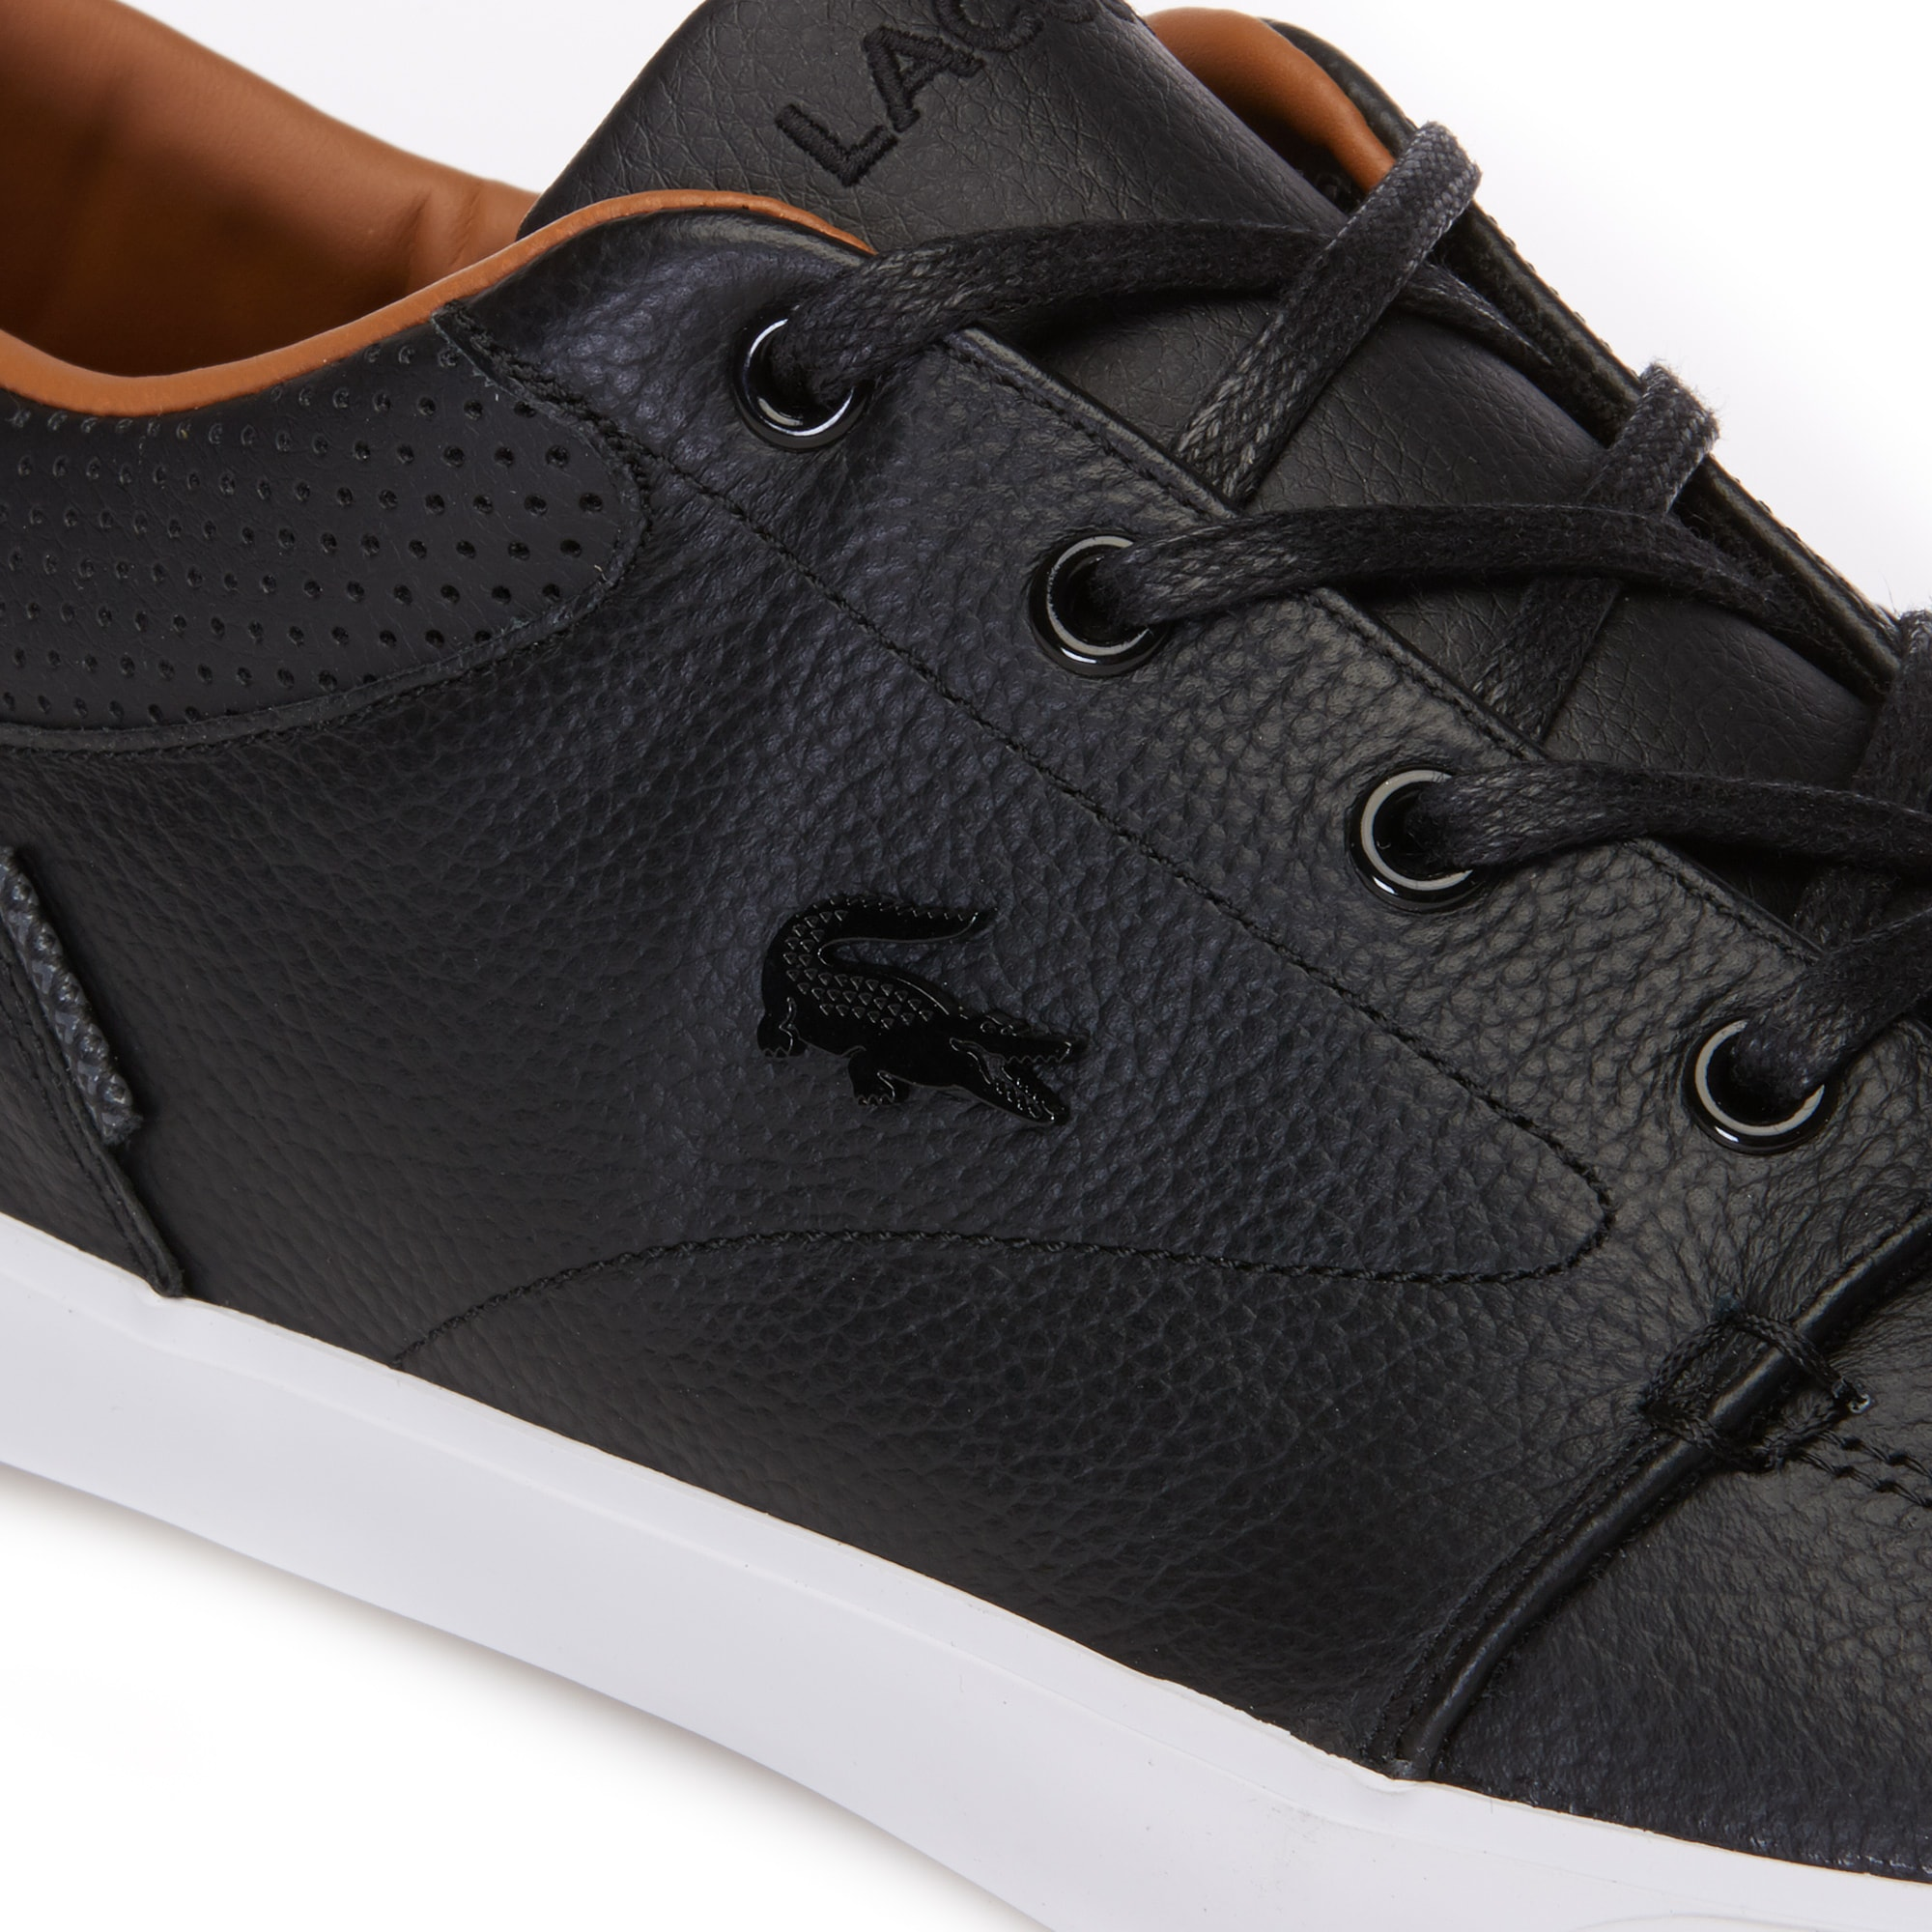 Men's Leather Bayliss Lace-up Sneakers